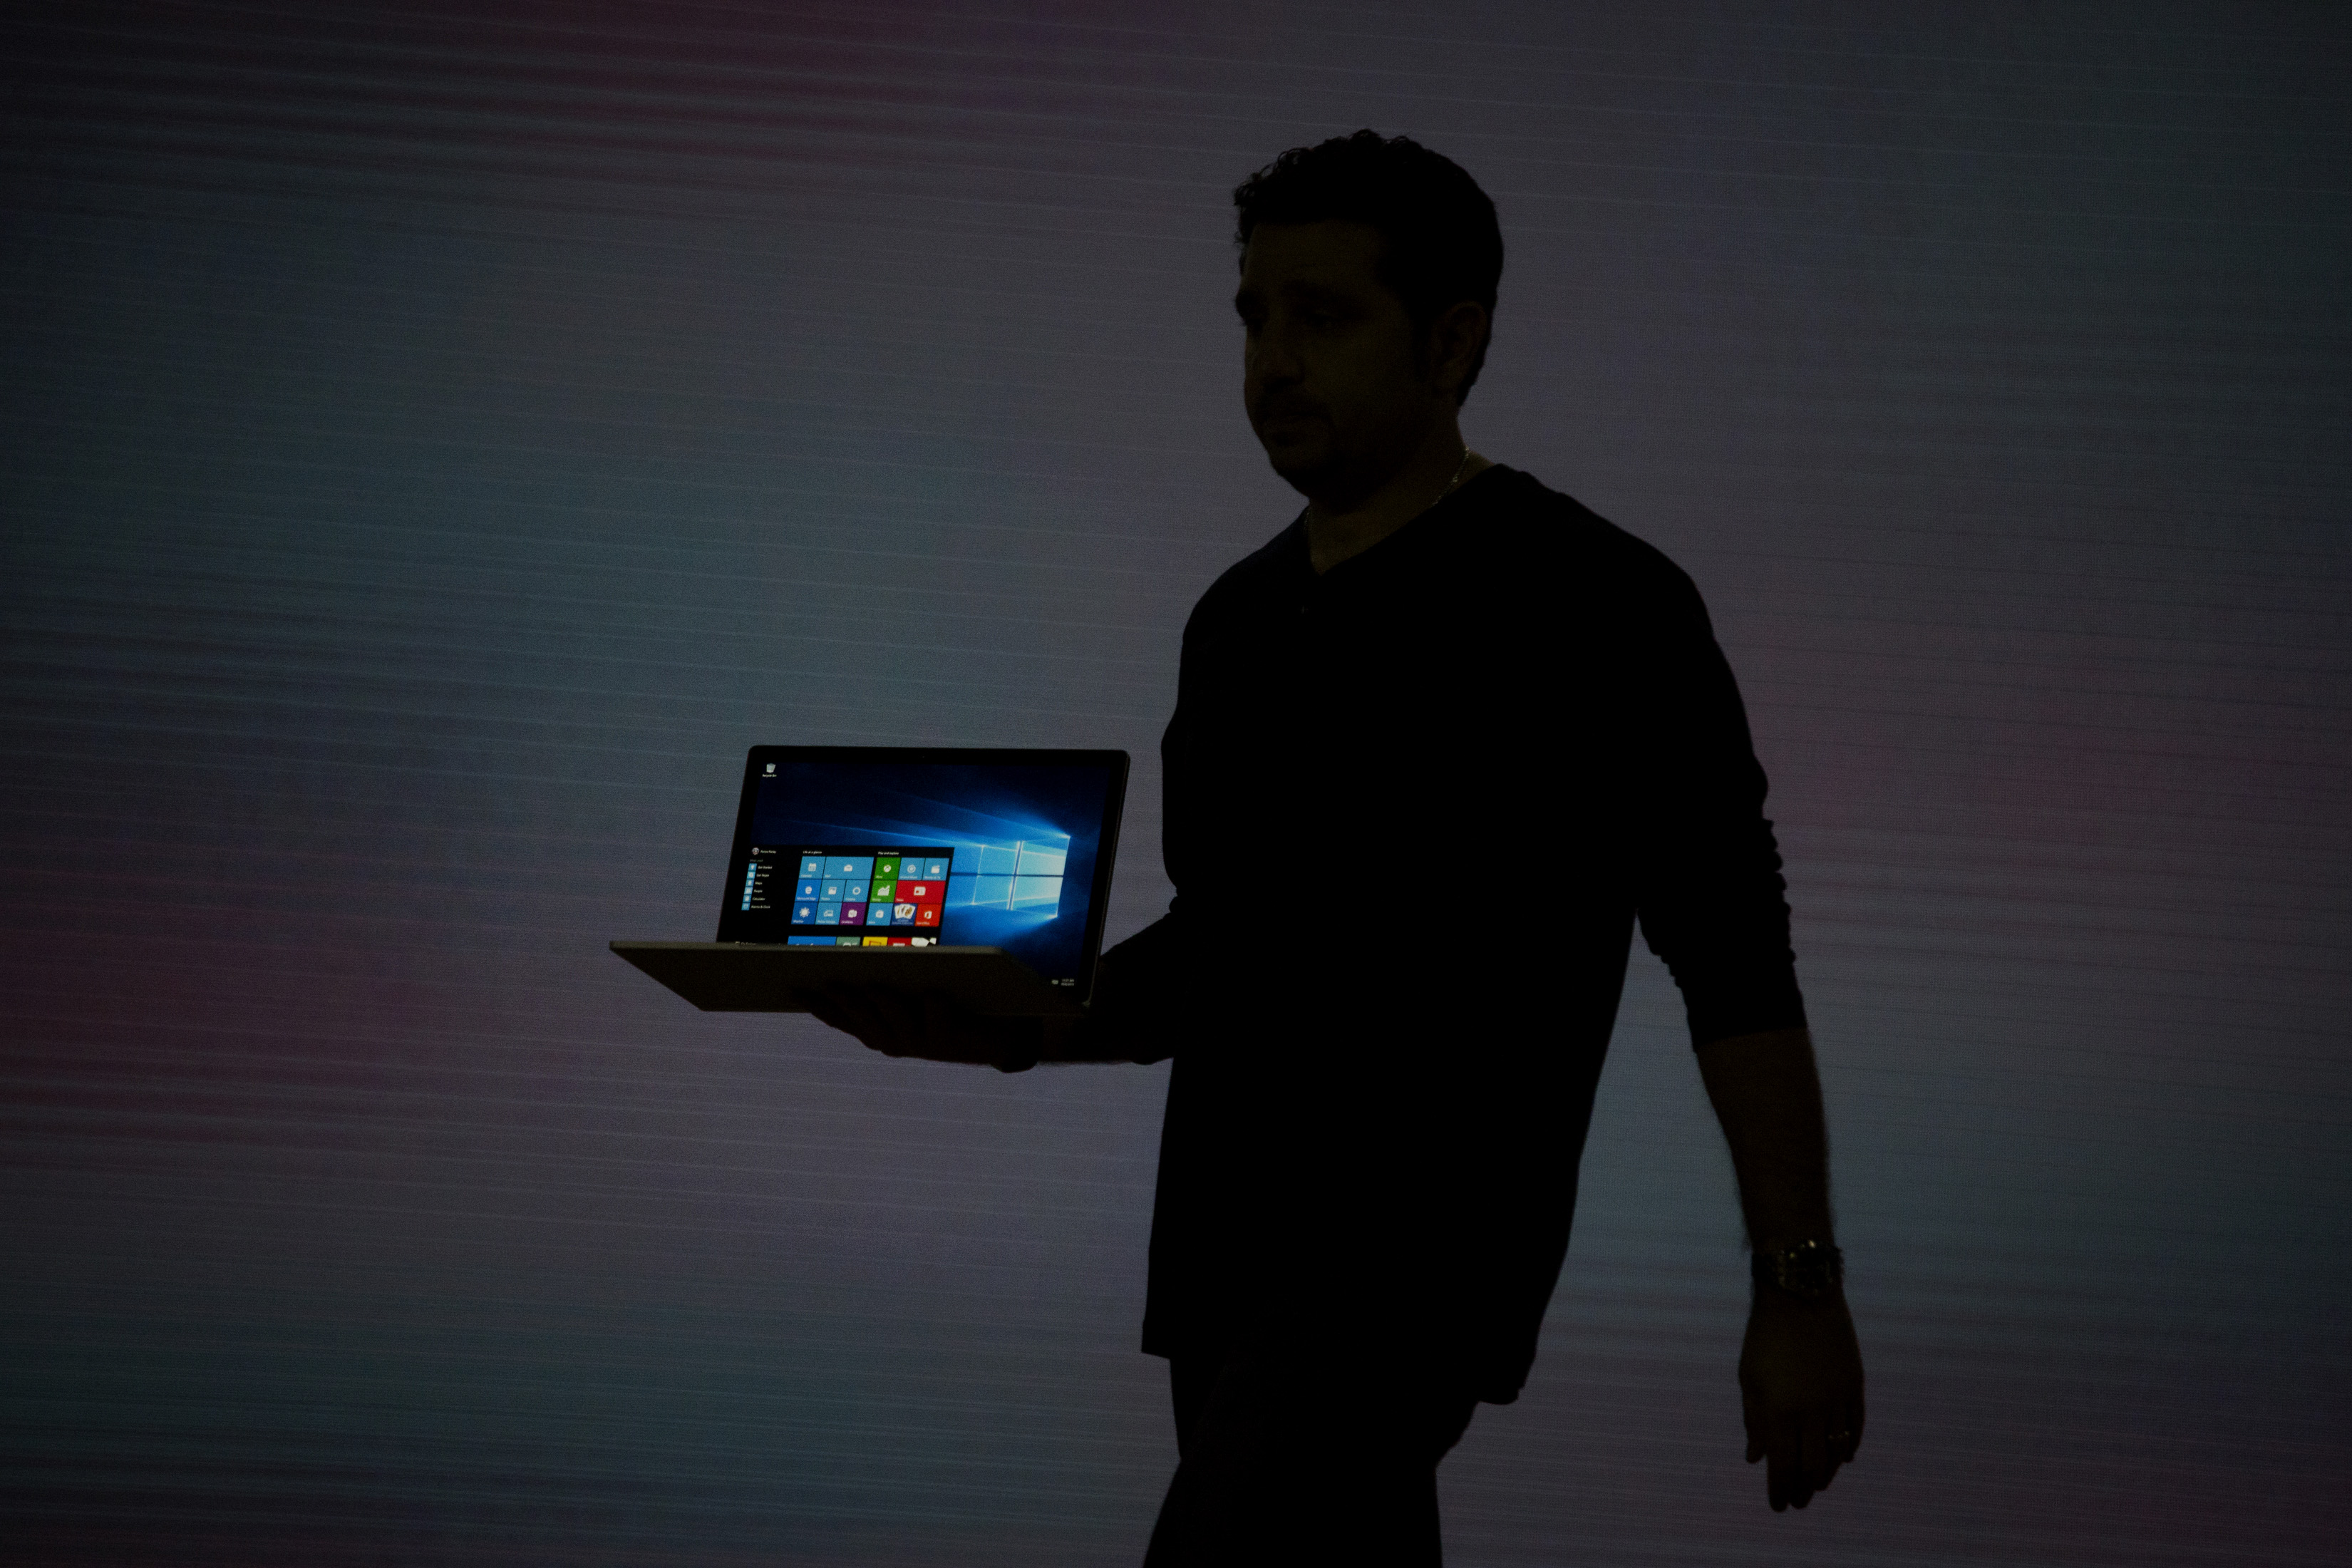 The silhouette of Panos Panay, corporate vice president of Microsoft Corp. Surface, is seen as he unveils the new Microsoft Surface Book laptop during the Windows 10 Devices event in New York, U.S., on Tuesday, Oct. 6, 2015.